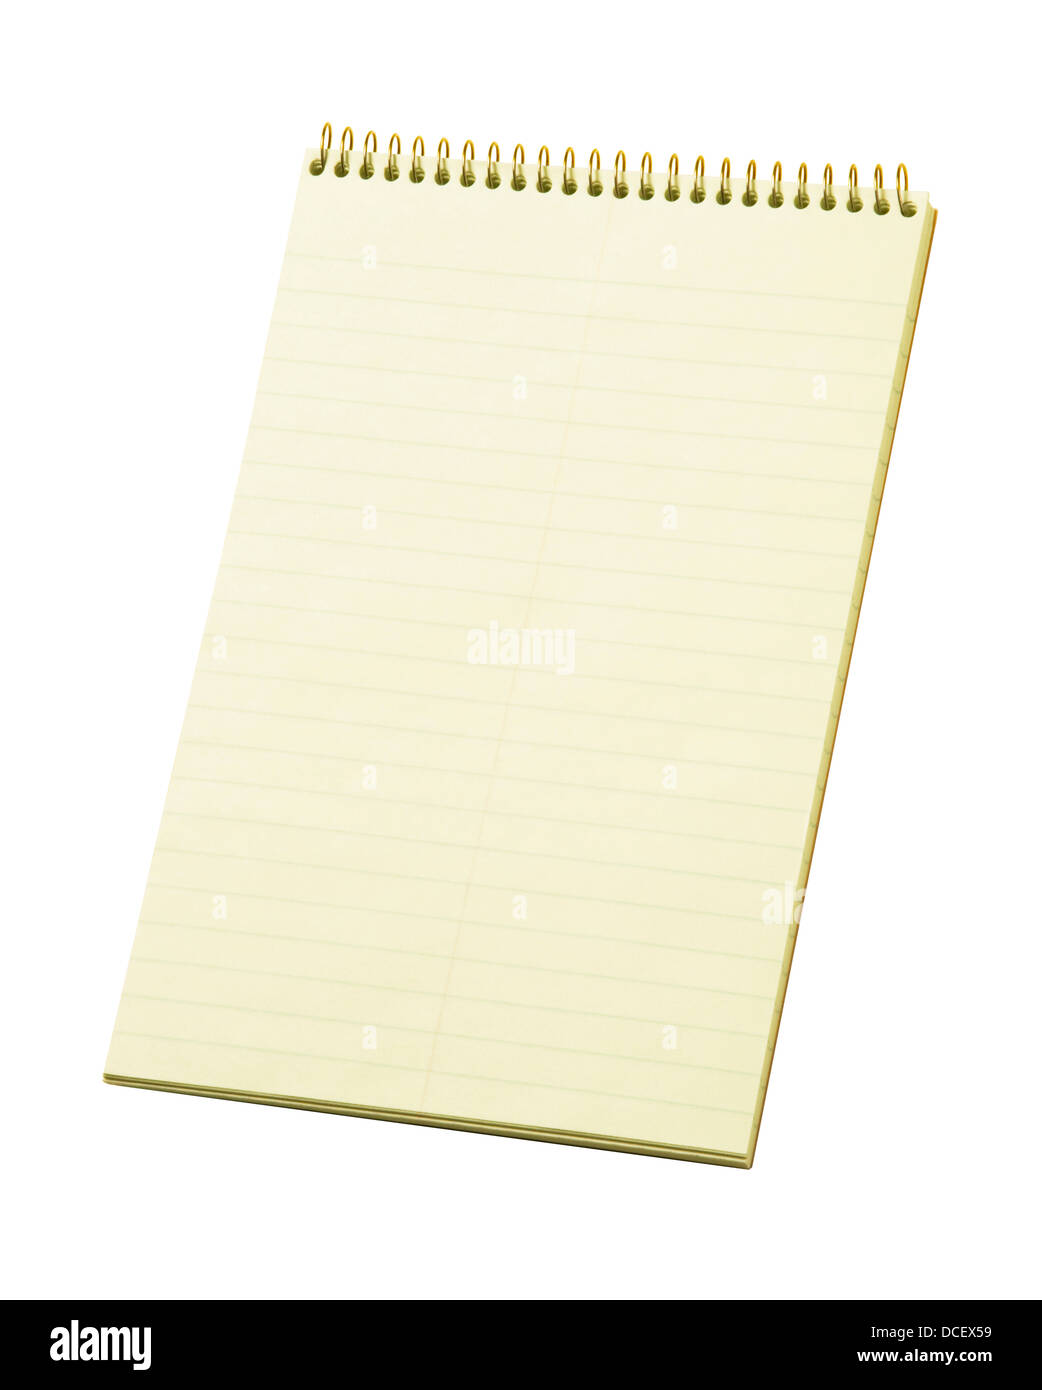 Stenography's lined notepad isolated against white - Stock Image